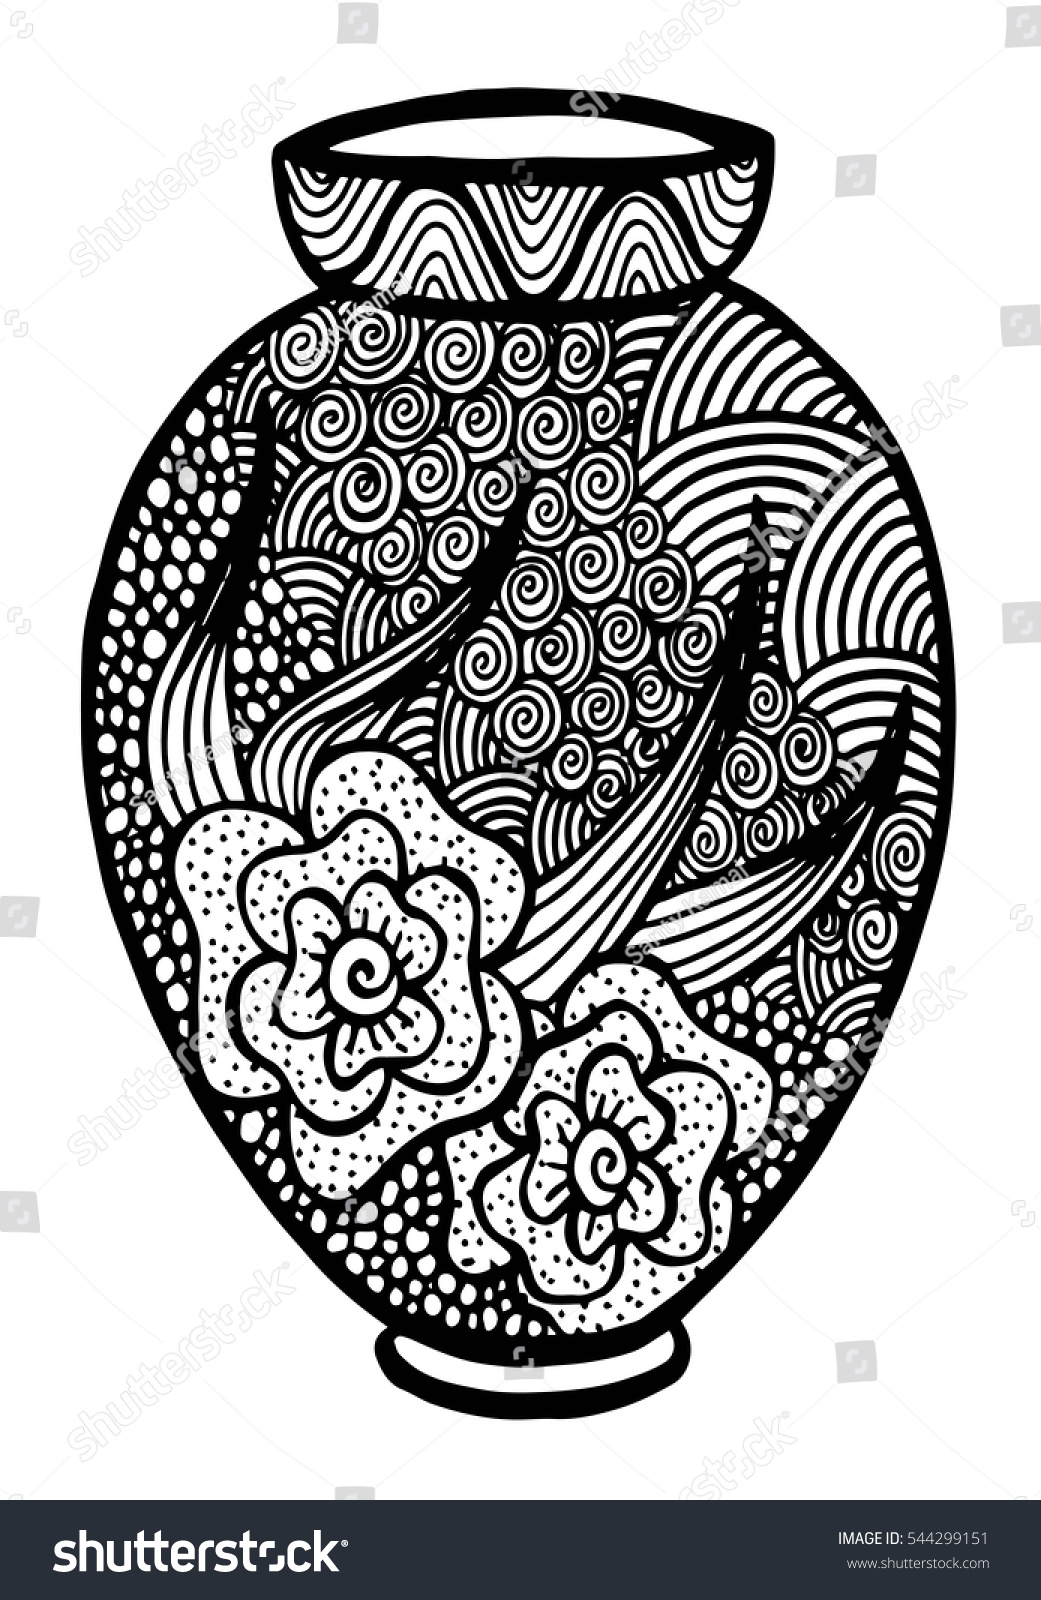 Beautiful Black White Vase Floral Decoration Stock Vector Royalty Free 544299151